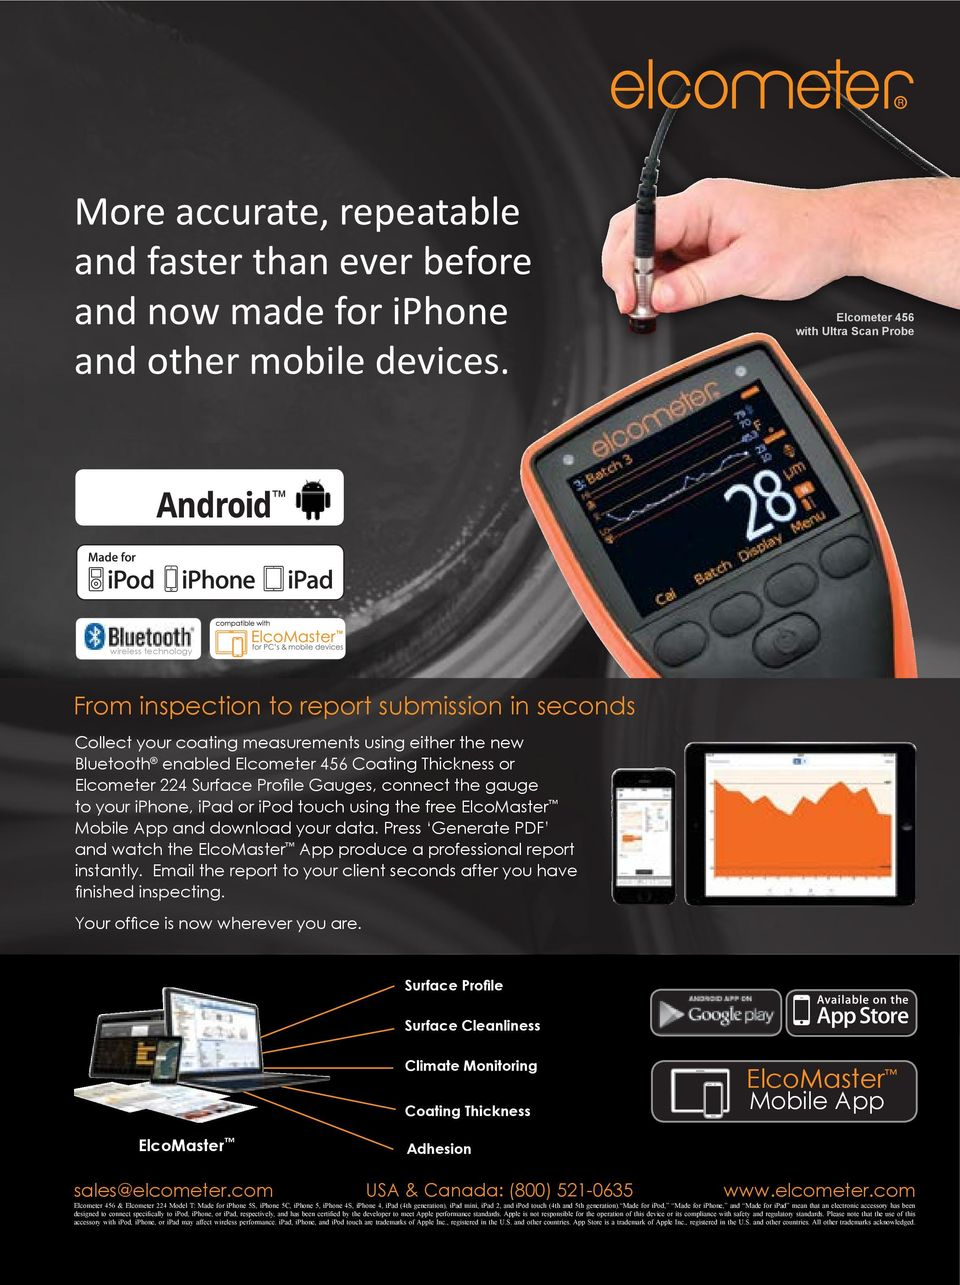 Thickness or Elcometer 224 Surface Profile Gauges, connect the gauge to your iphone, ipad or ipod touch using the free ElcoMaster Mobile App and download your data.